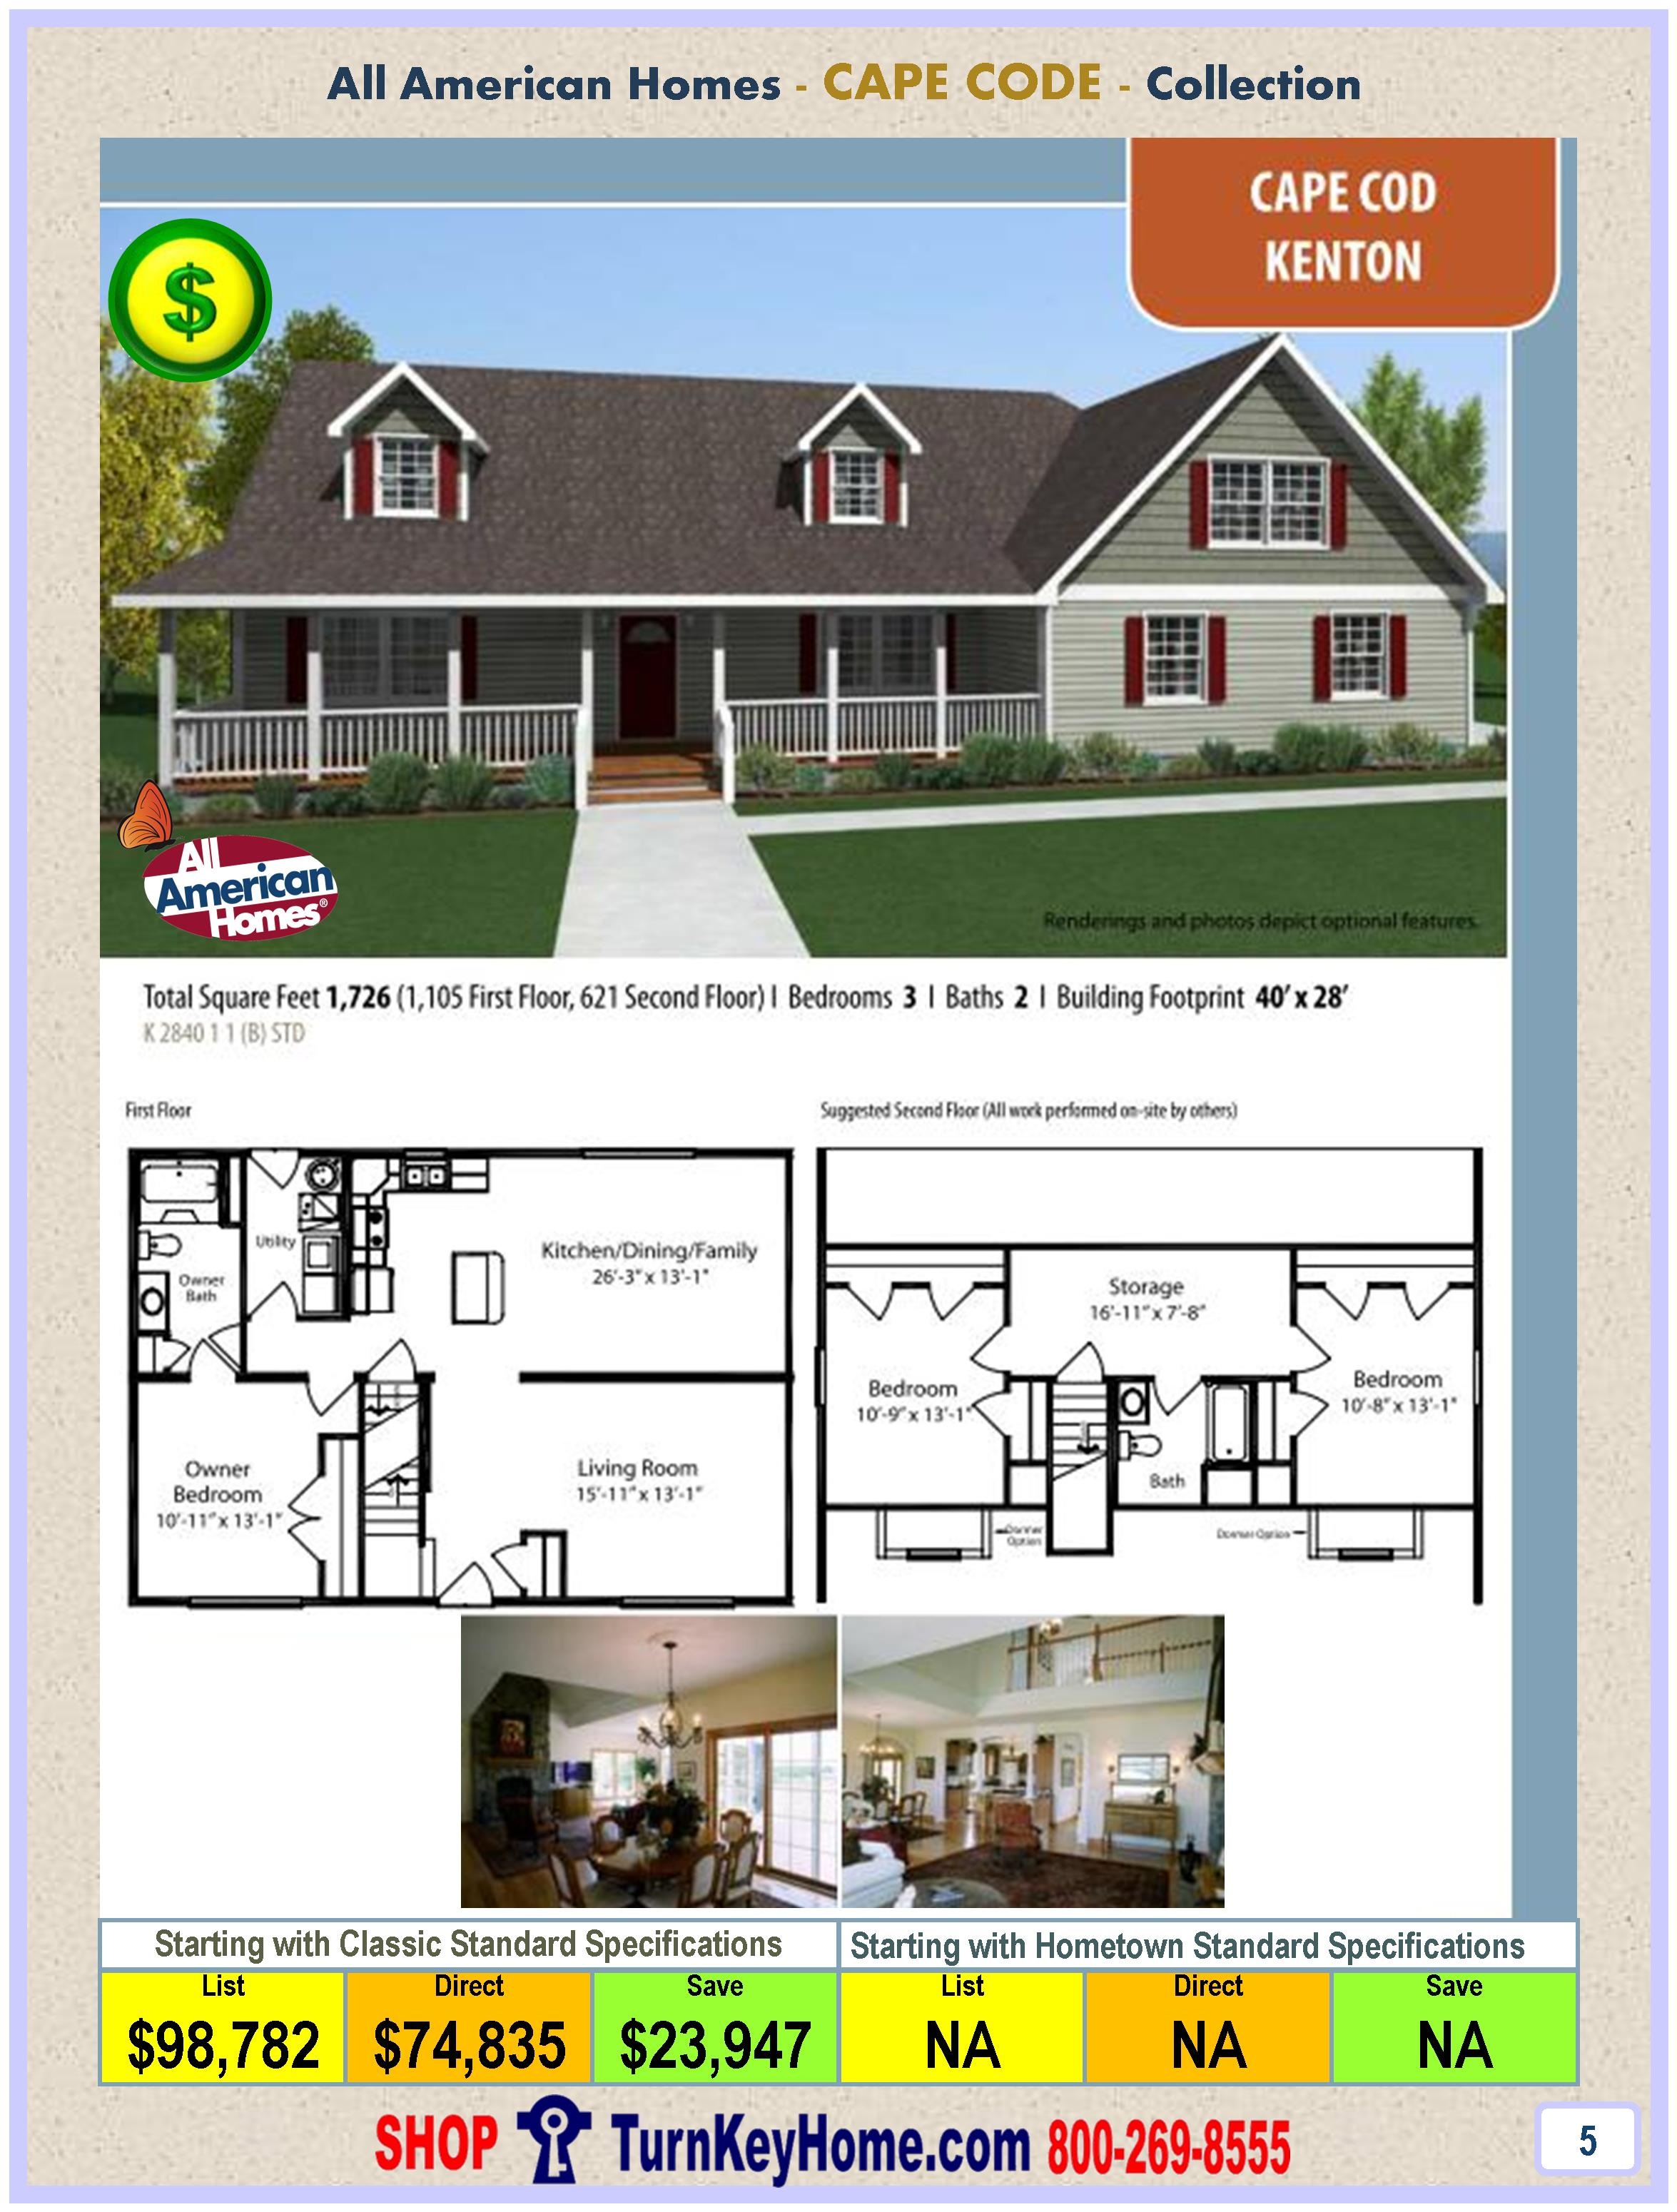 Lovely Cape Cod Modular Home Plans #9: Modular.Home.All.American.Homes.Cape.Cod.KENTON.